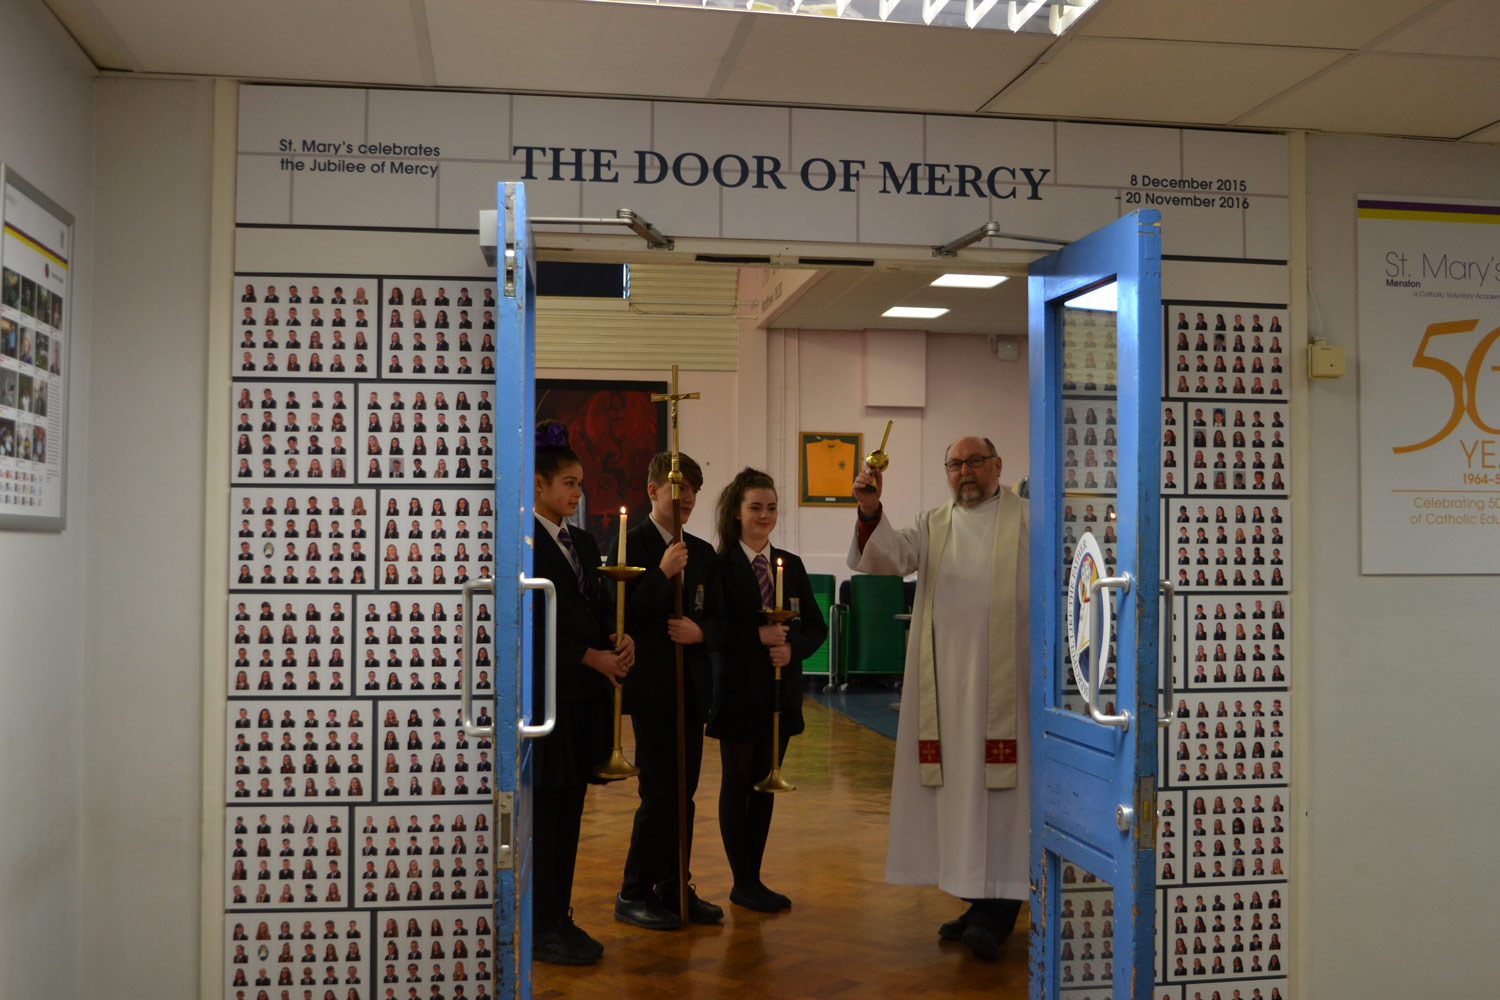 Photo:On Thursday 11 February 2016, during Year 8 Mass, Canon Lawrie Hulme blessed our Door of Mercy